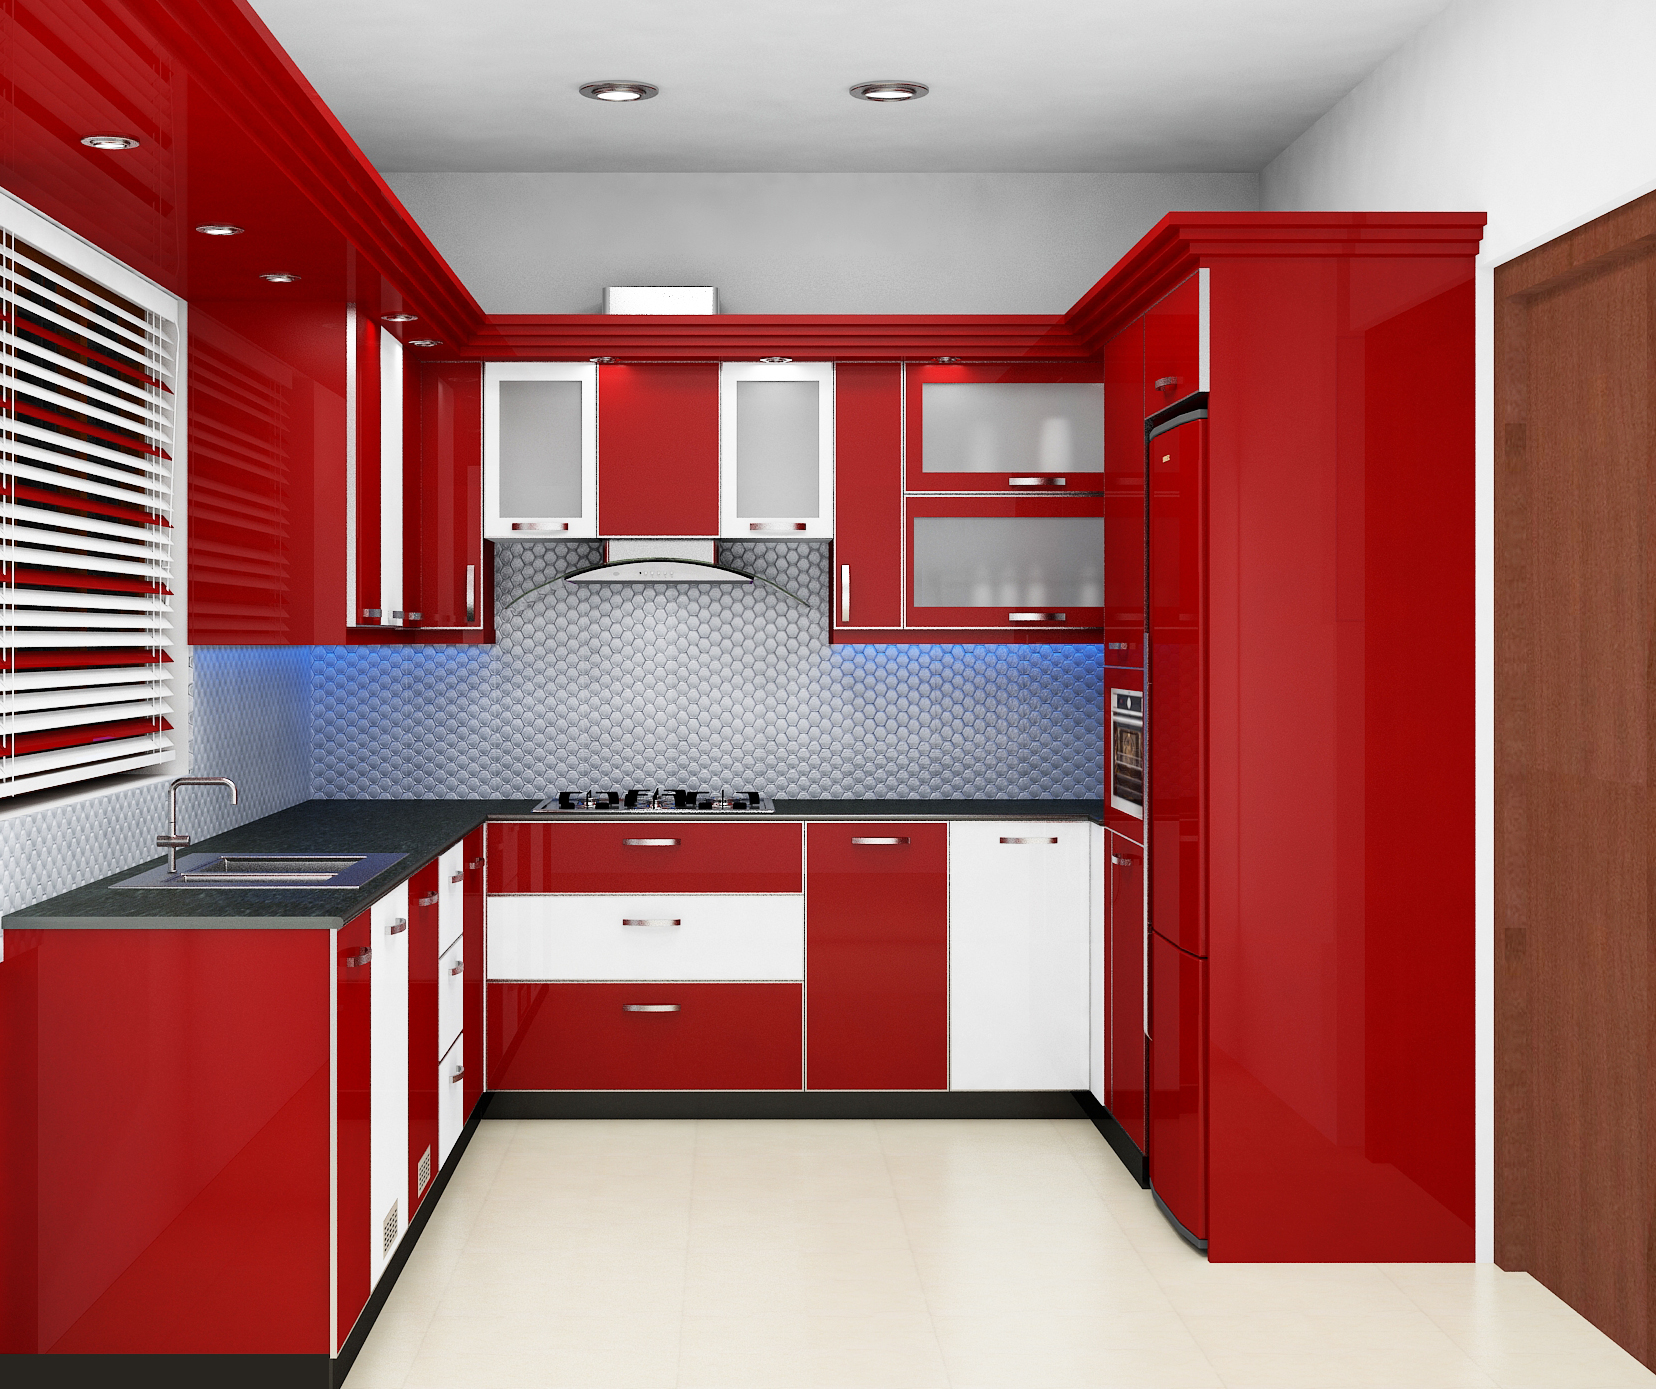 Exemplary and amazing modular kitchen home interior design - Design interior ...